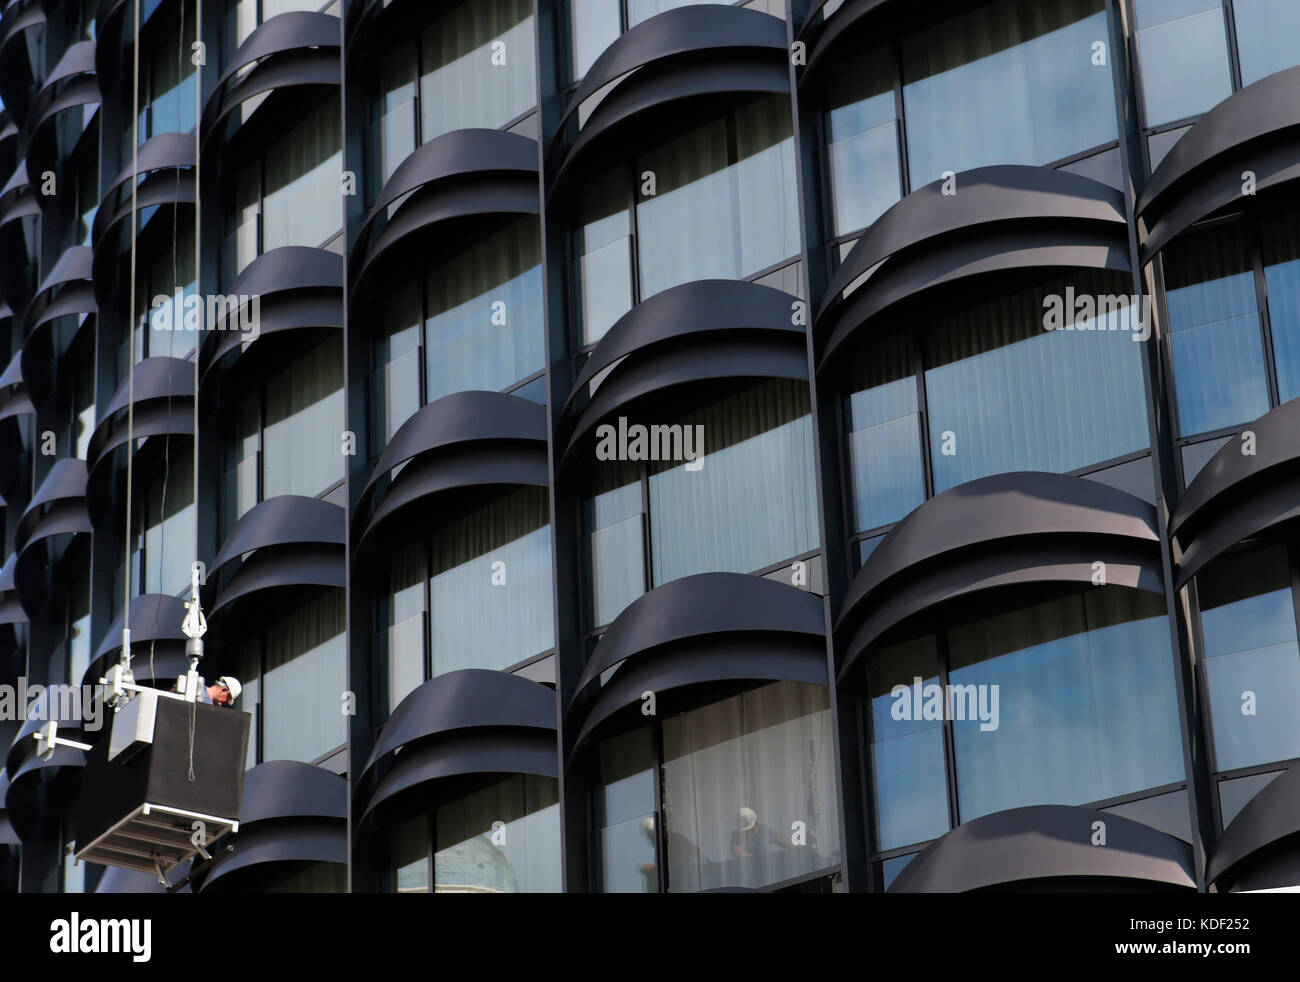 window cleaner on a tower building in barcelona - Stock Image